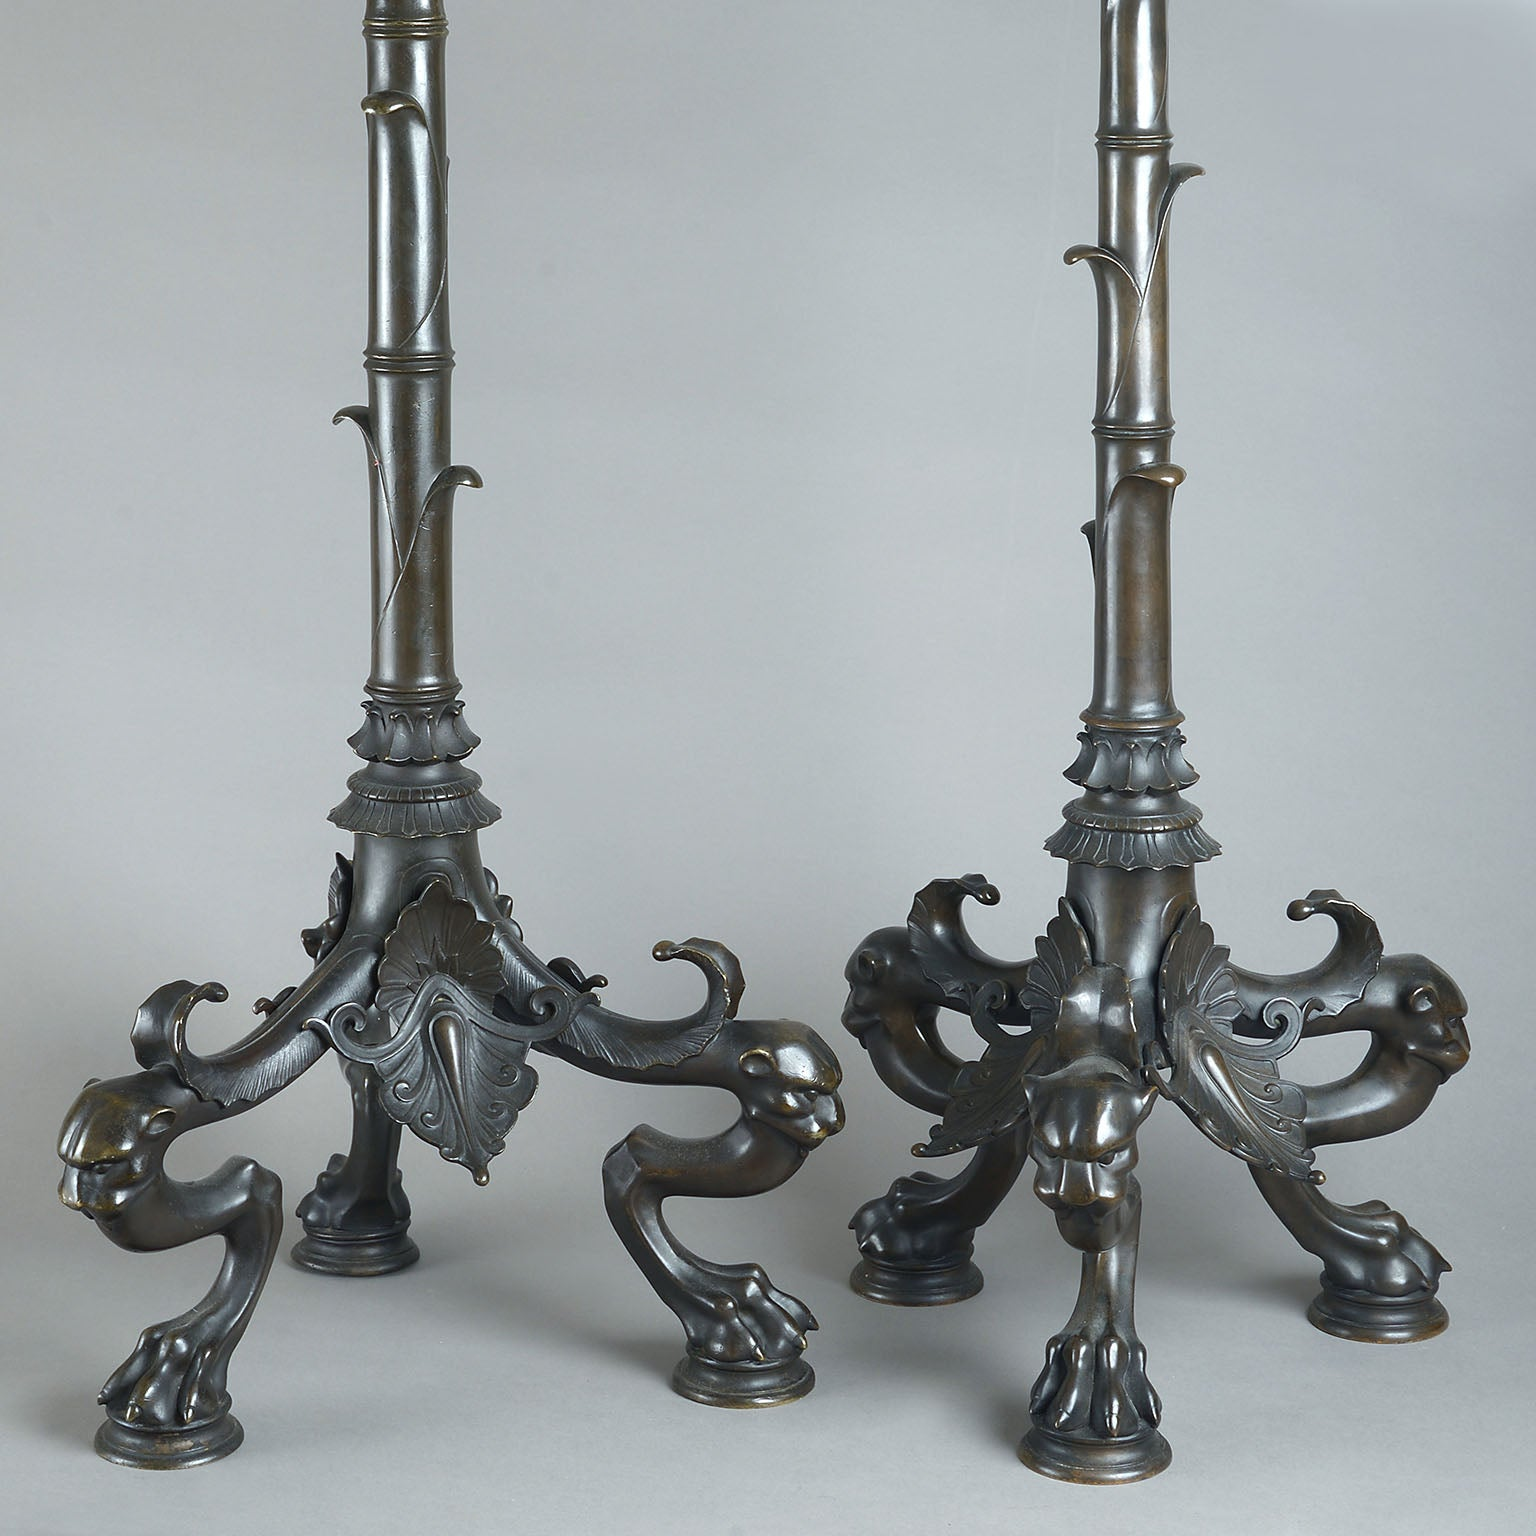 Matched Pair of Neo-Classical Bronze Torcheres